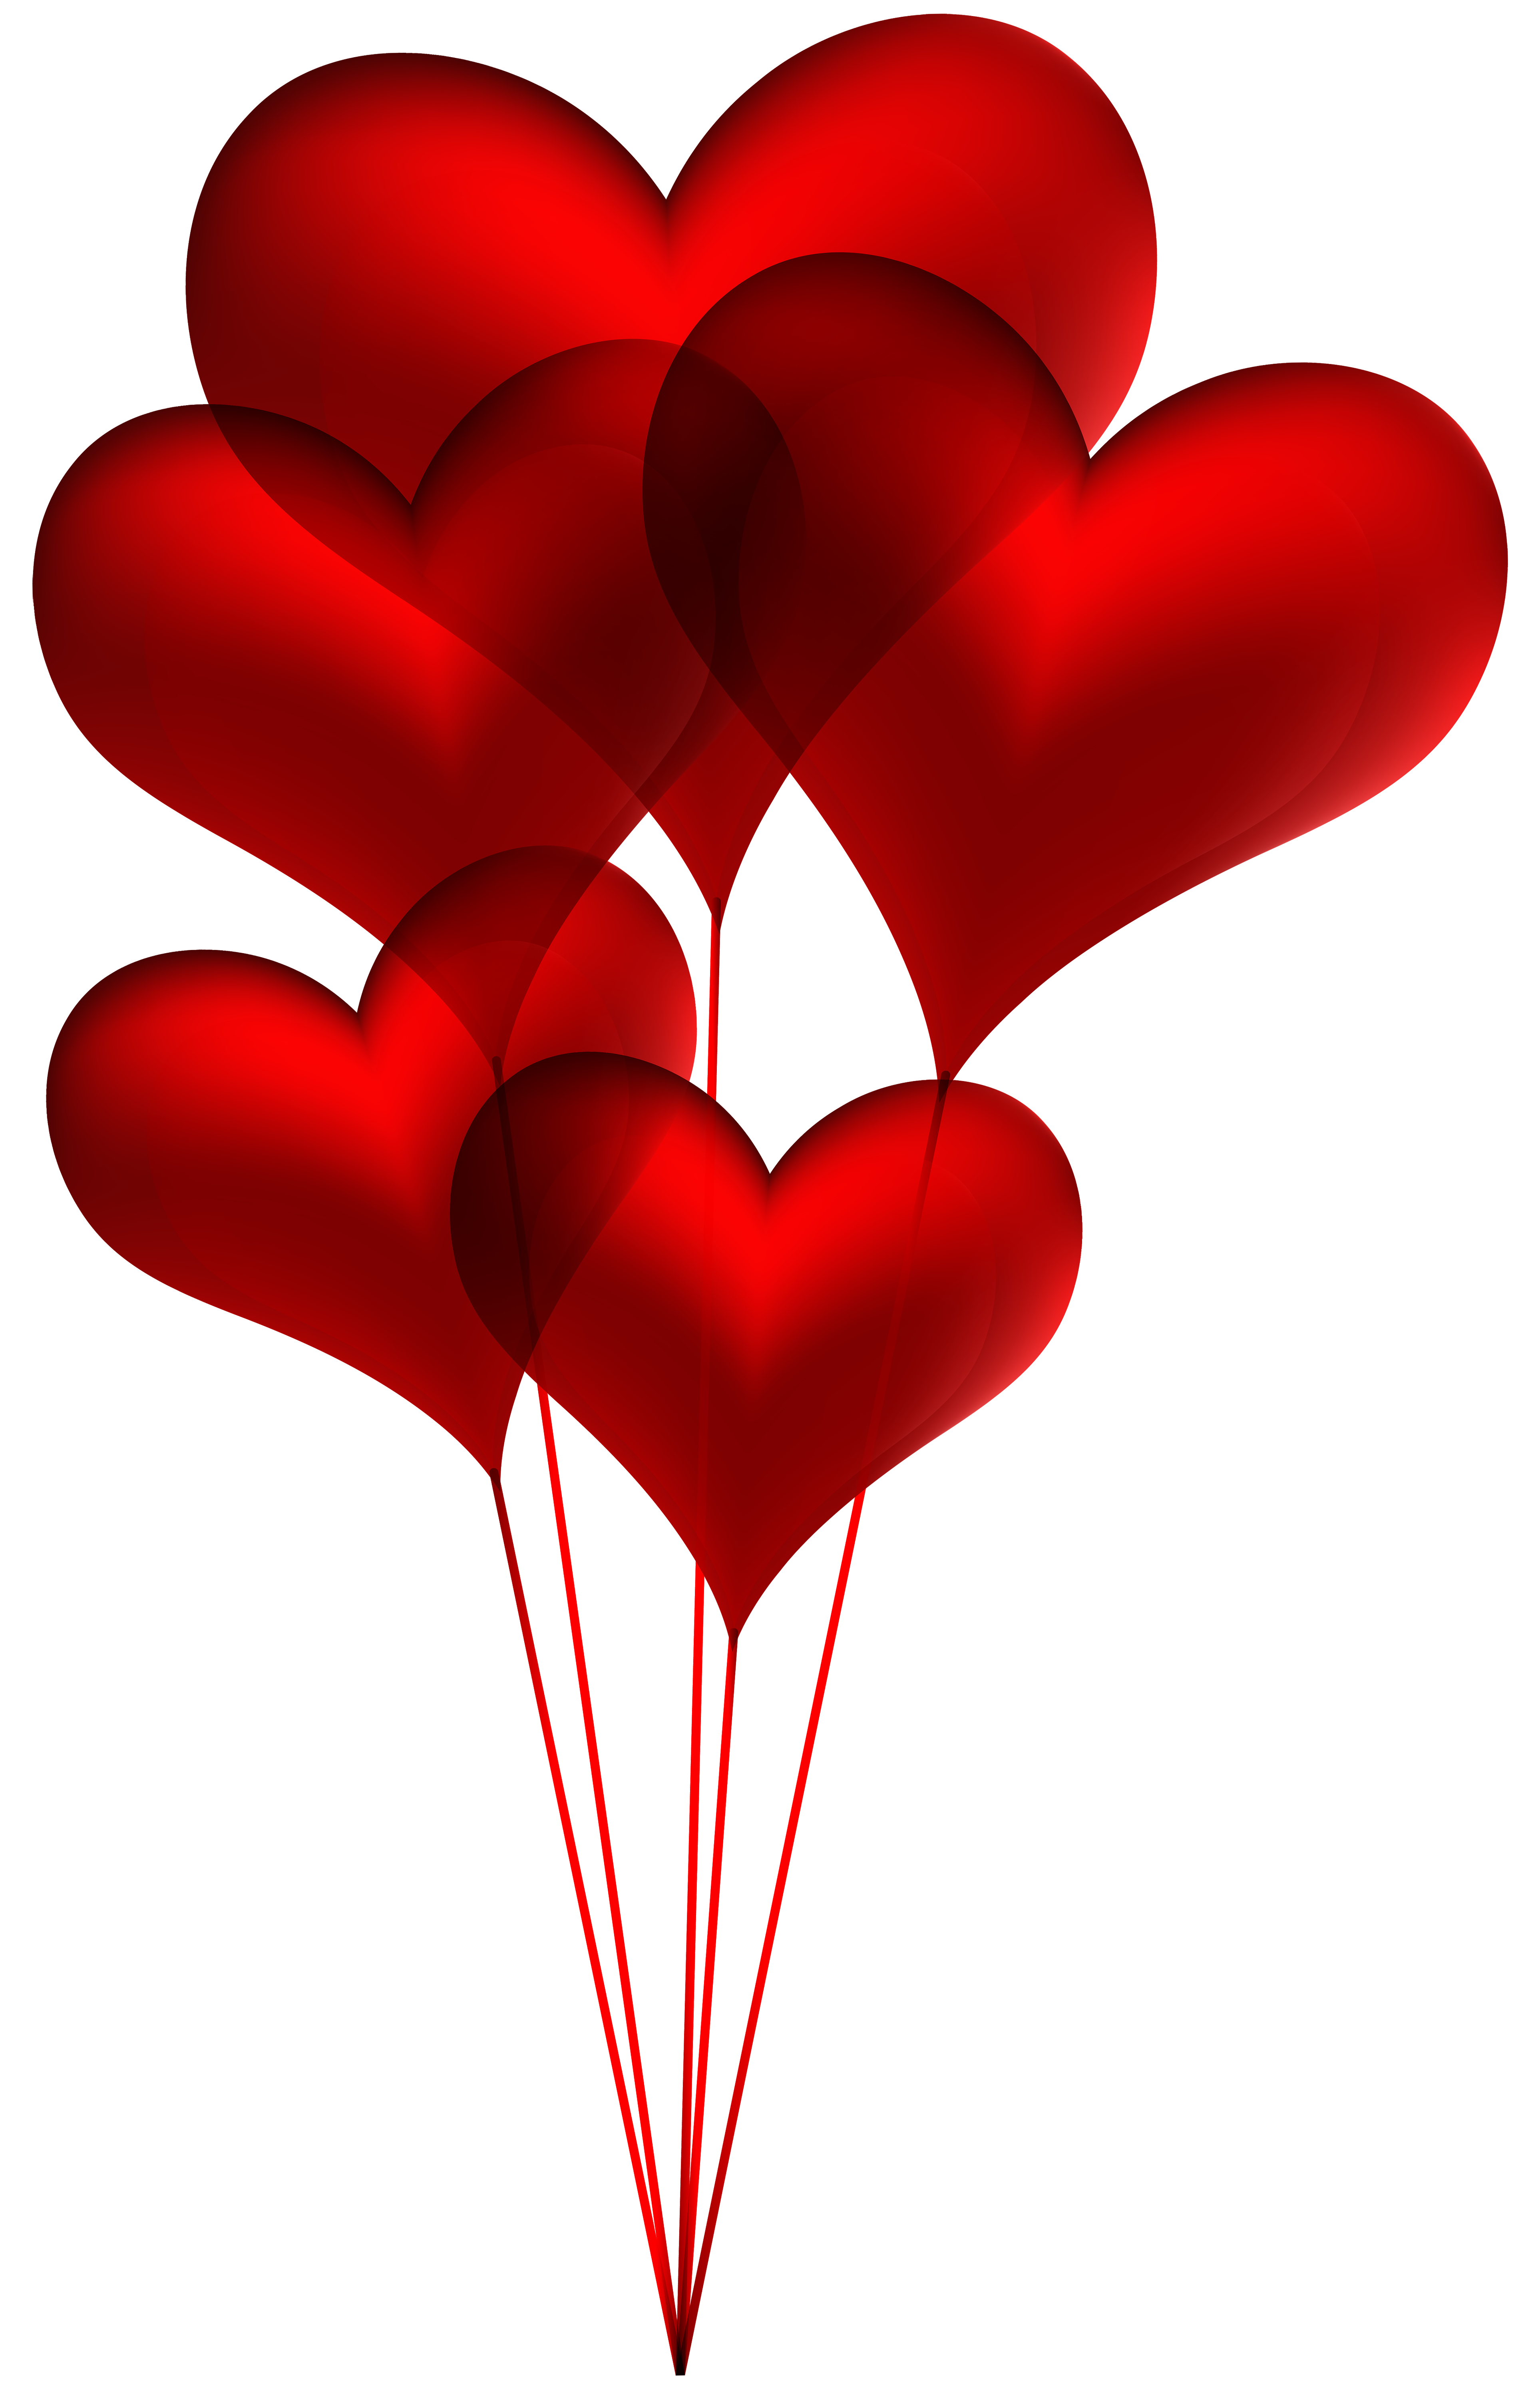 Heart balloons clipart graphic transparent Red Heart Balloons Transparent PNG Clip Art Image | Gallery ... graphic transparent